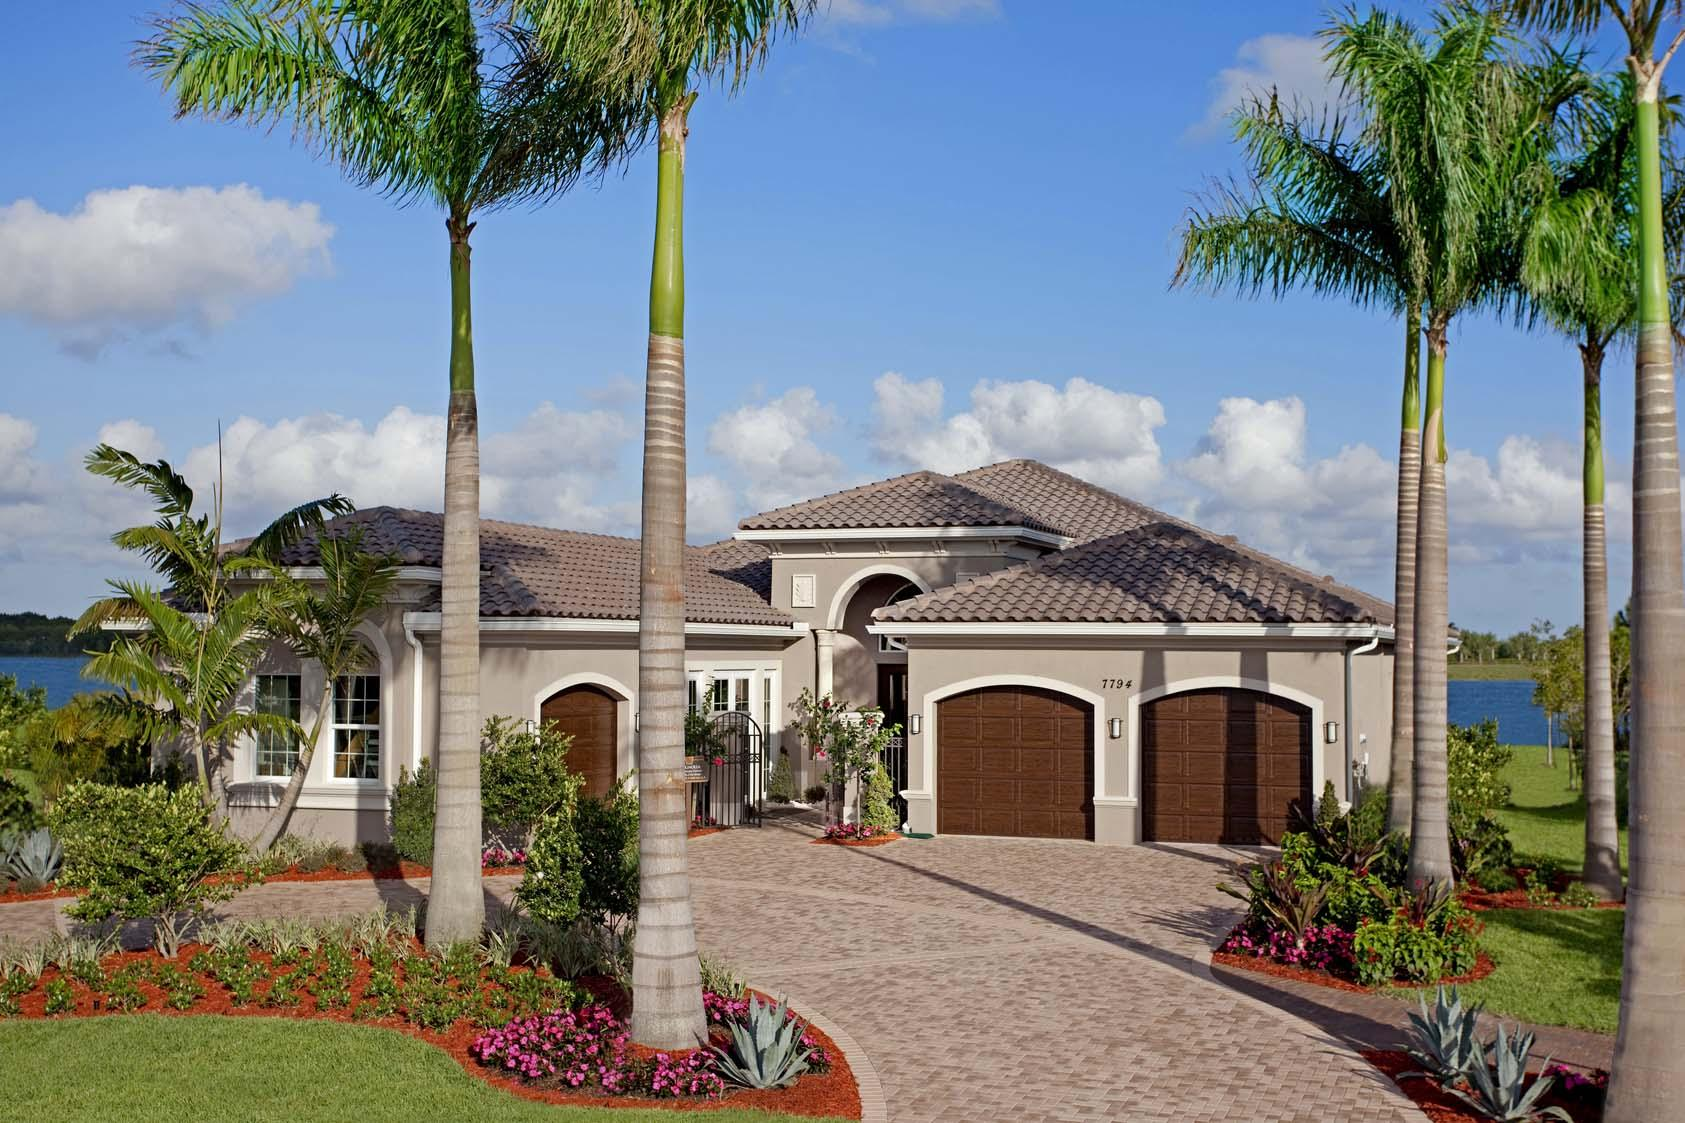 West Palm Beach Fl 33412 754 123 Trulia Estimate Refinance Your Home 7792 Arbor Crest Way